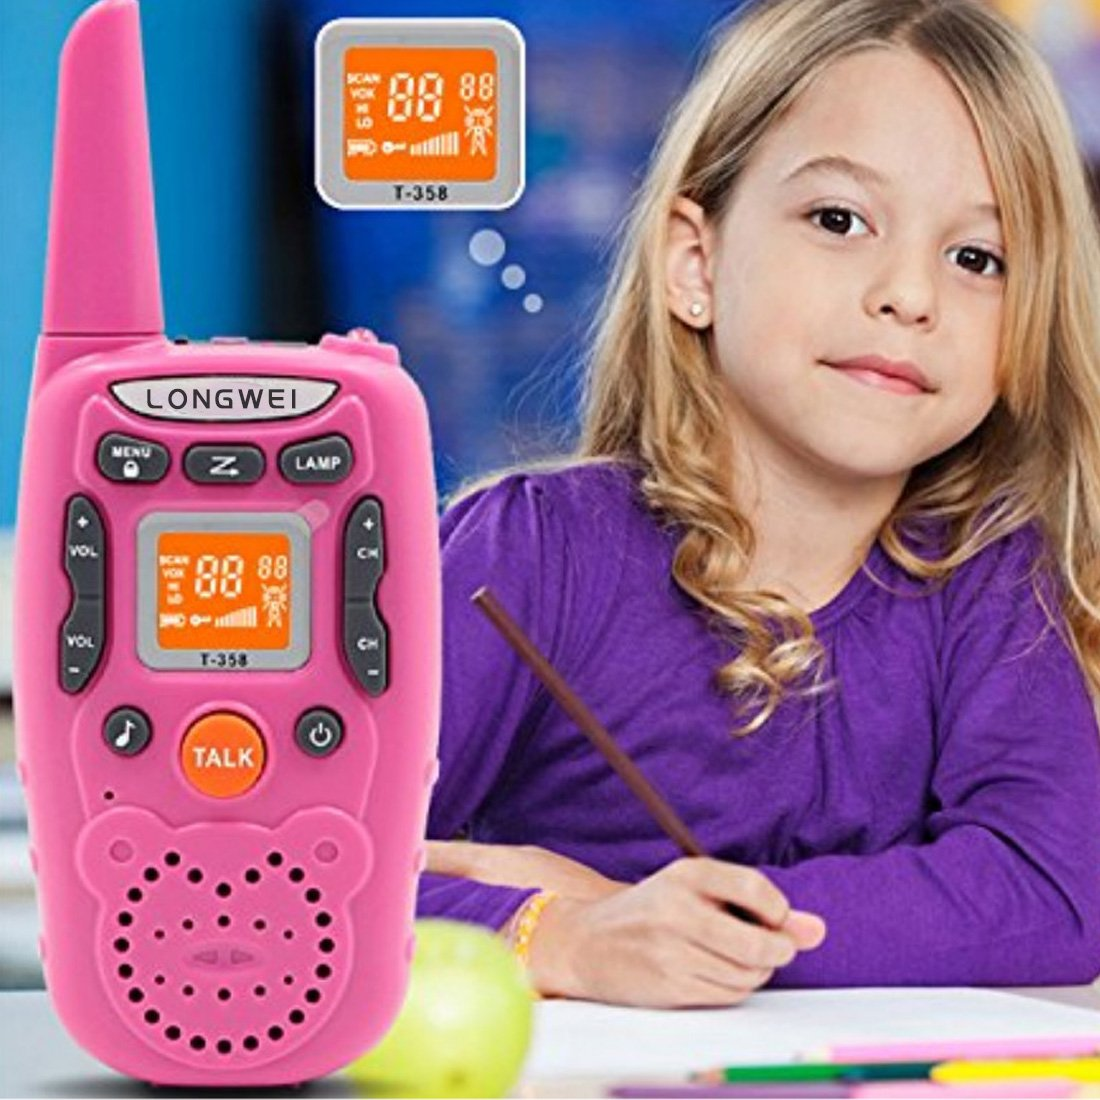 Kids Walkie Talkie Set 0.5W FRS/GMRS 22 Channel Two Way Radio Up to 3 Km Range for Children Camping Hiking(2PCS Pink) by longwei (Image #5)